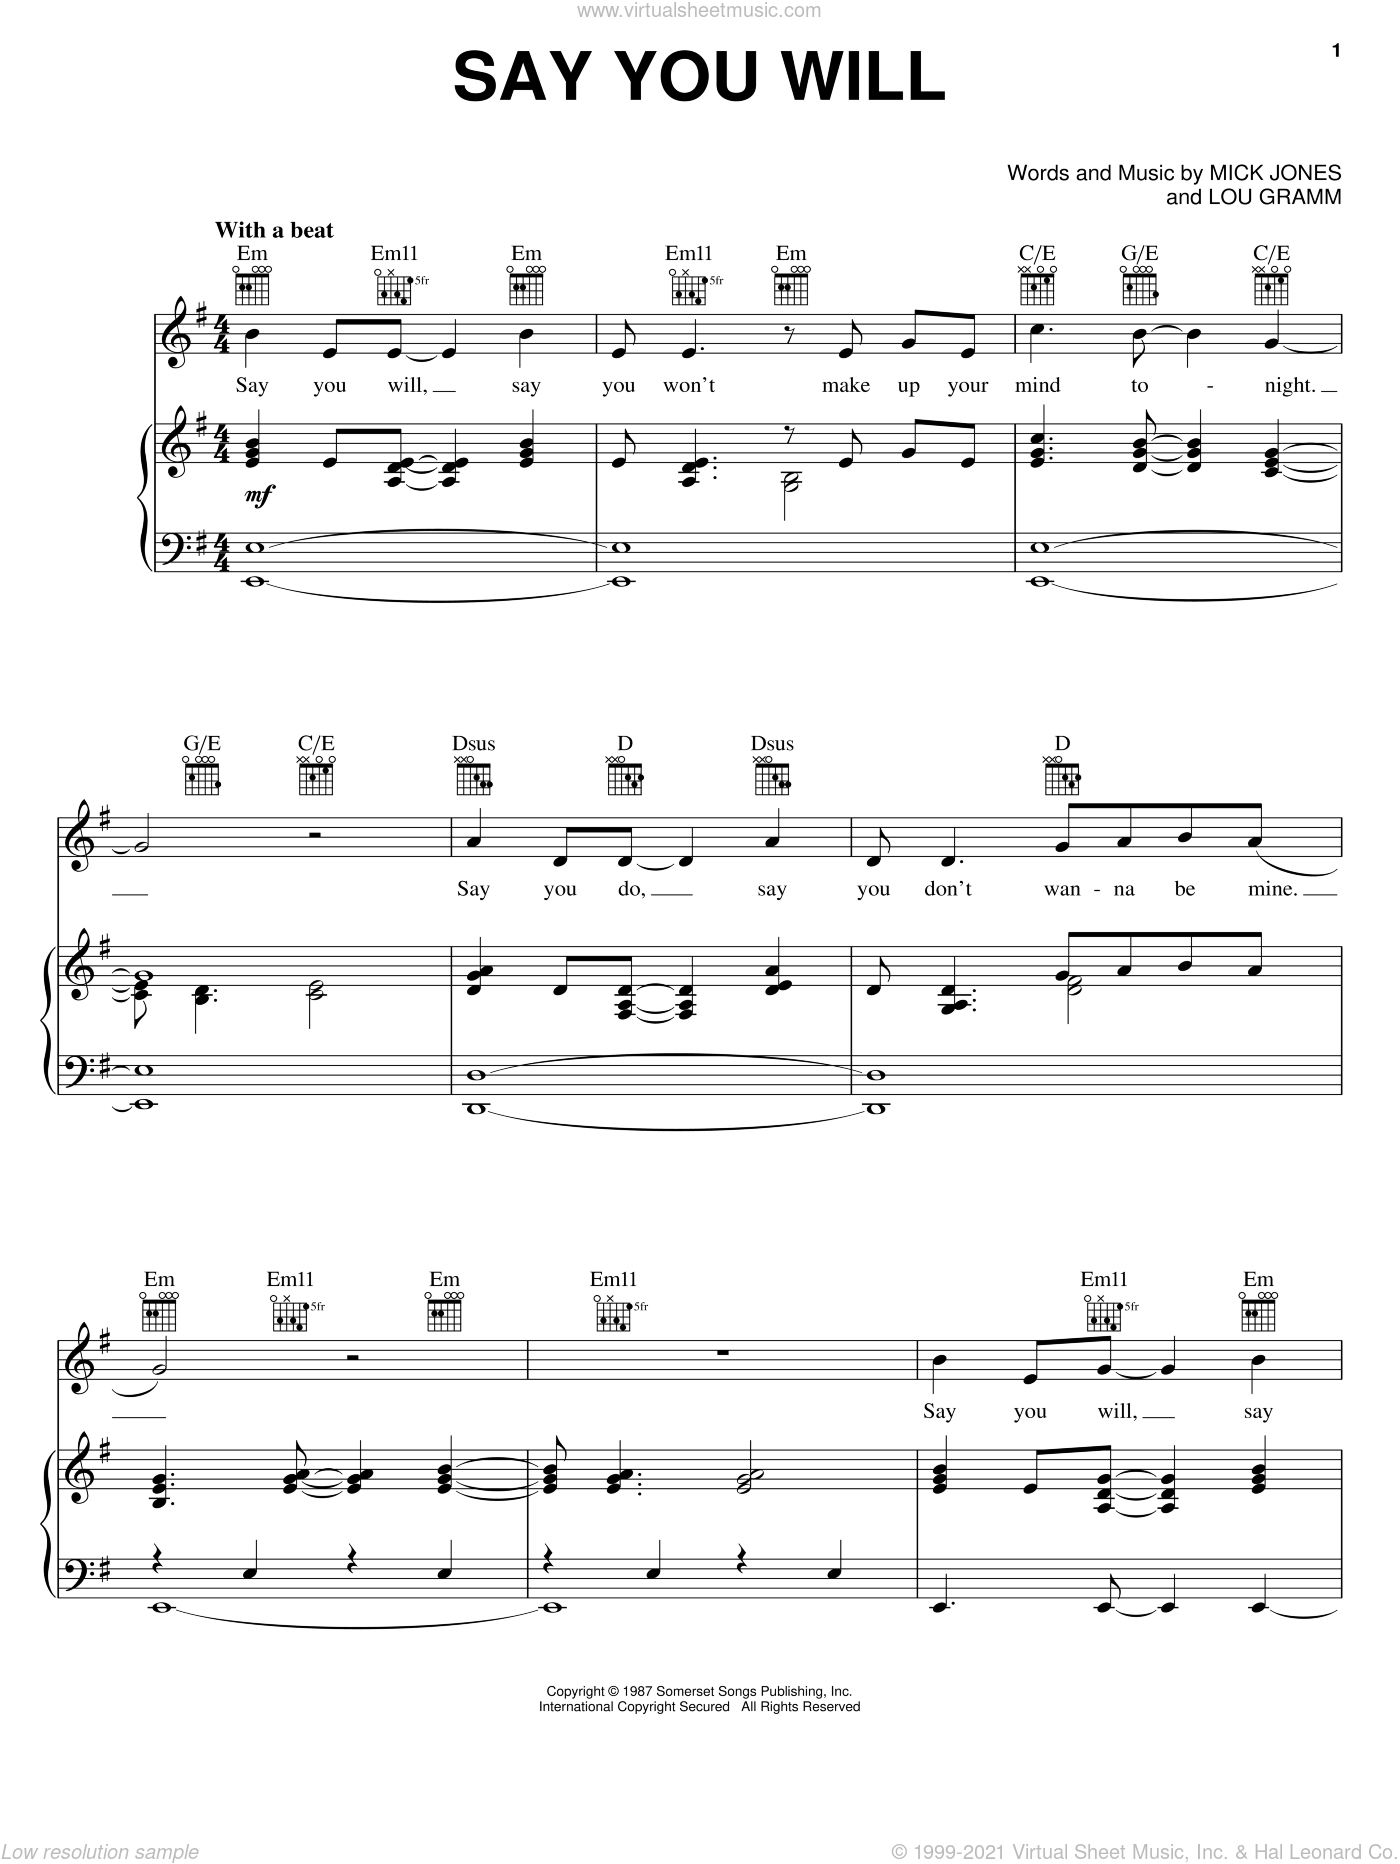 Say You Will sheet music for voice, piano or guitar by Mick Jones, Foreigner and Lou Gramm. Score Image Preview.